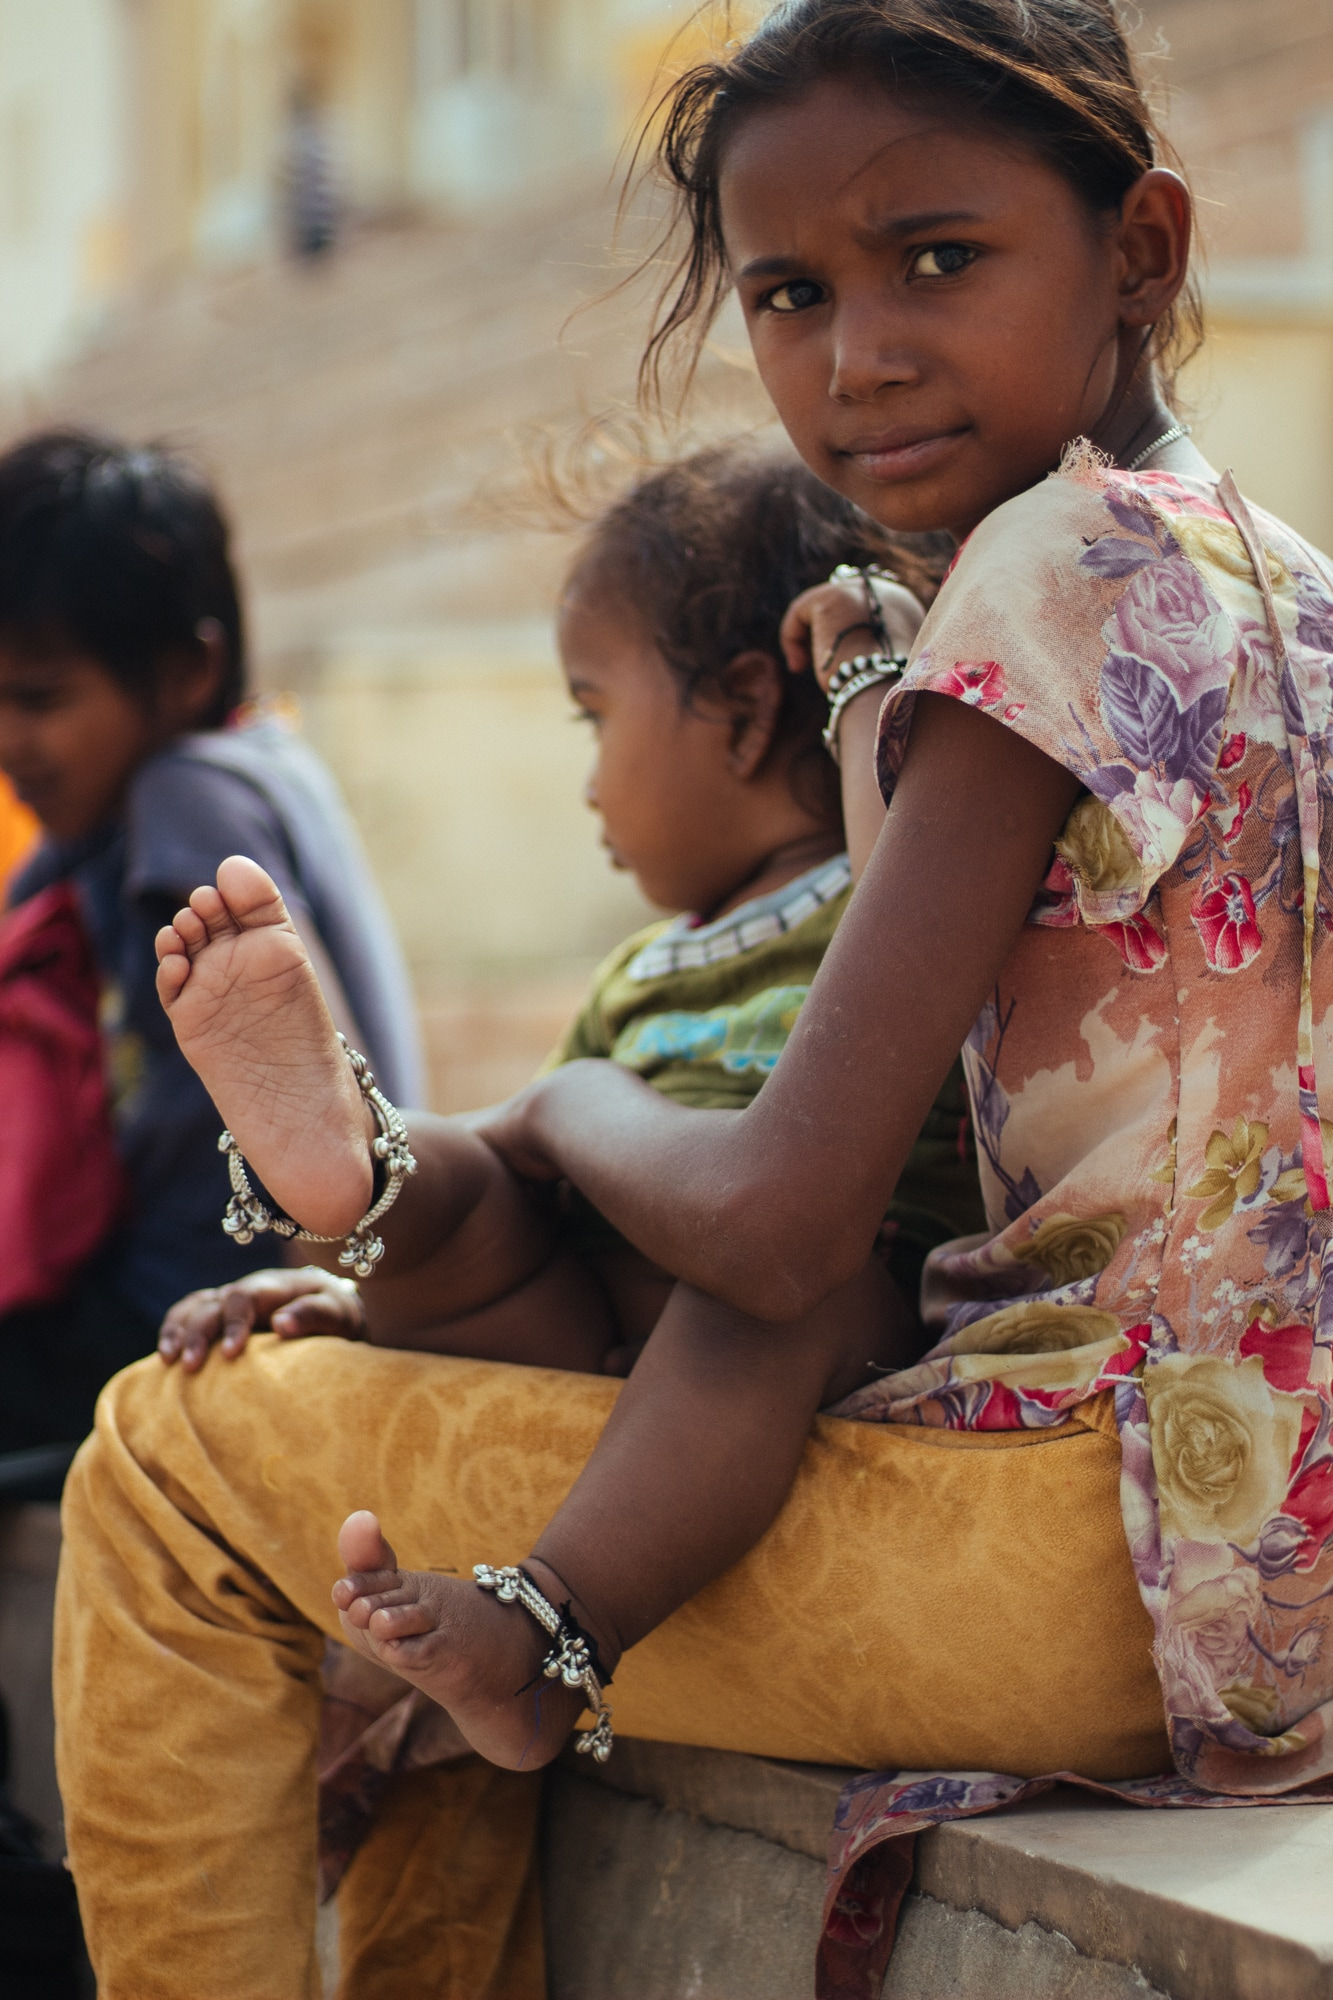 A young girl at Pushkar ghat holding a child.